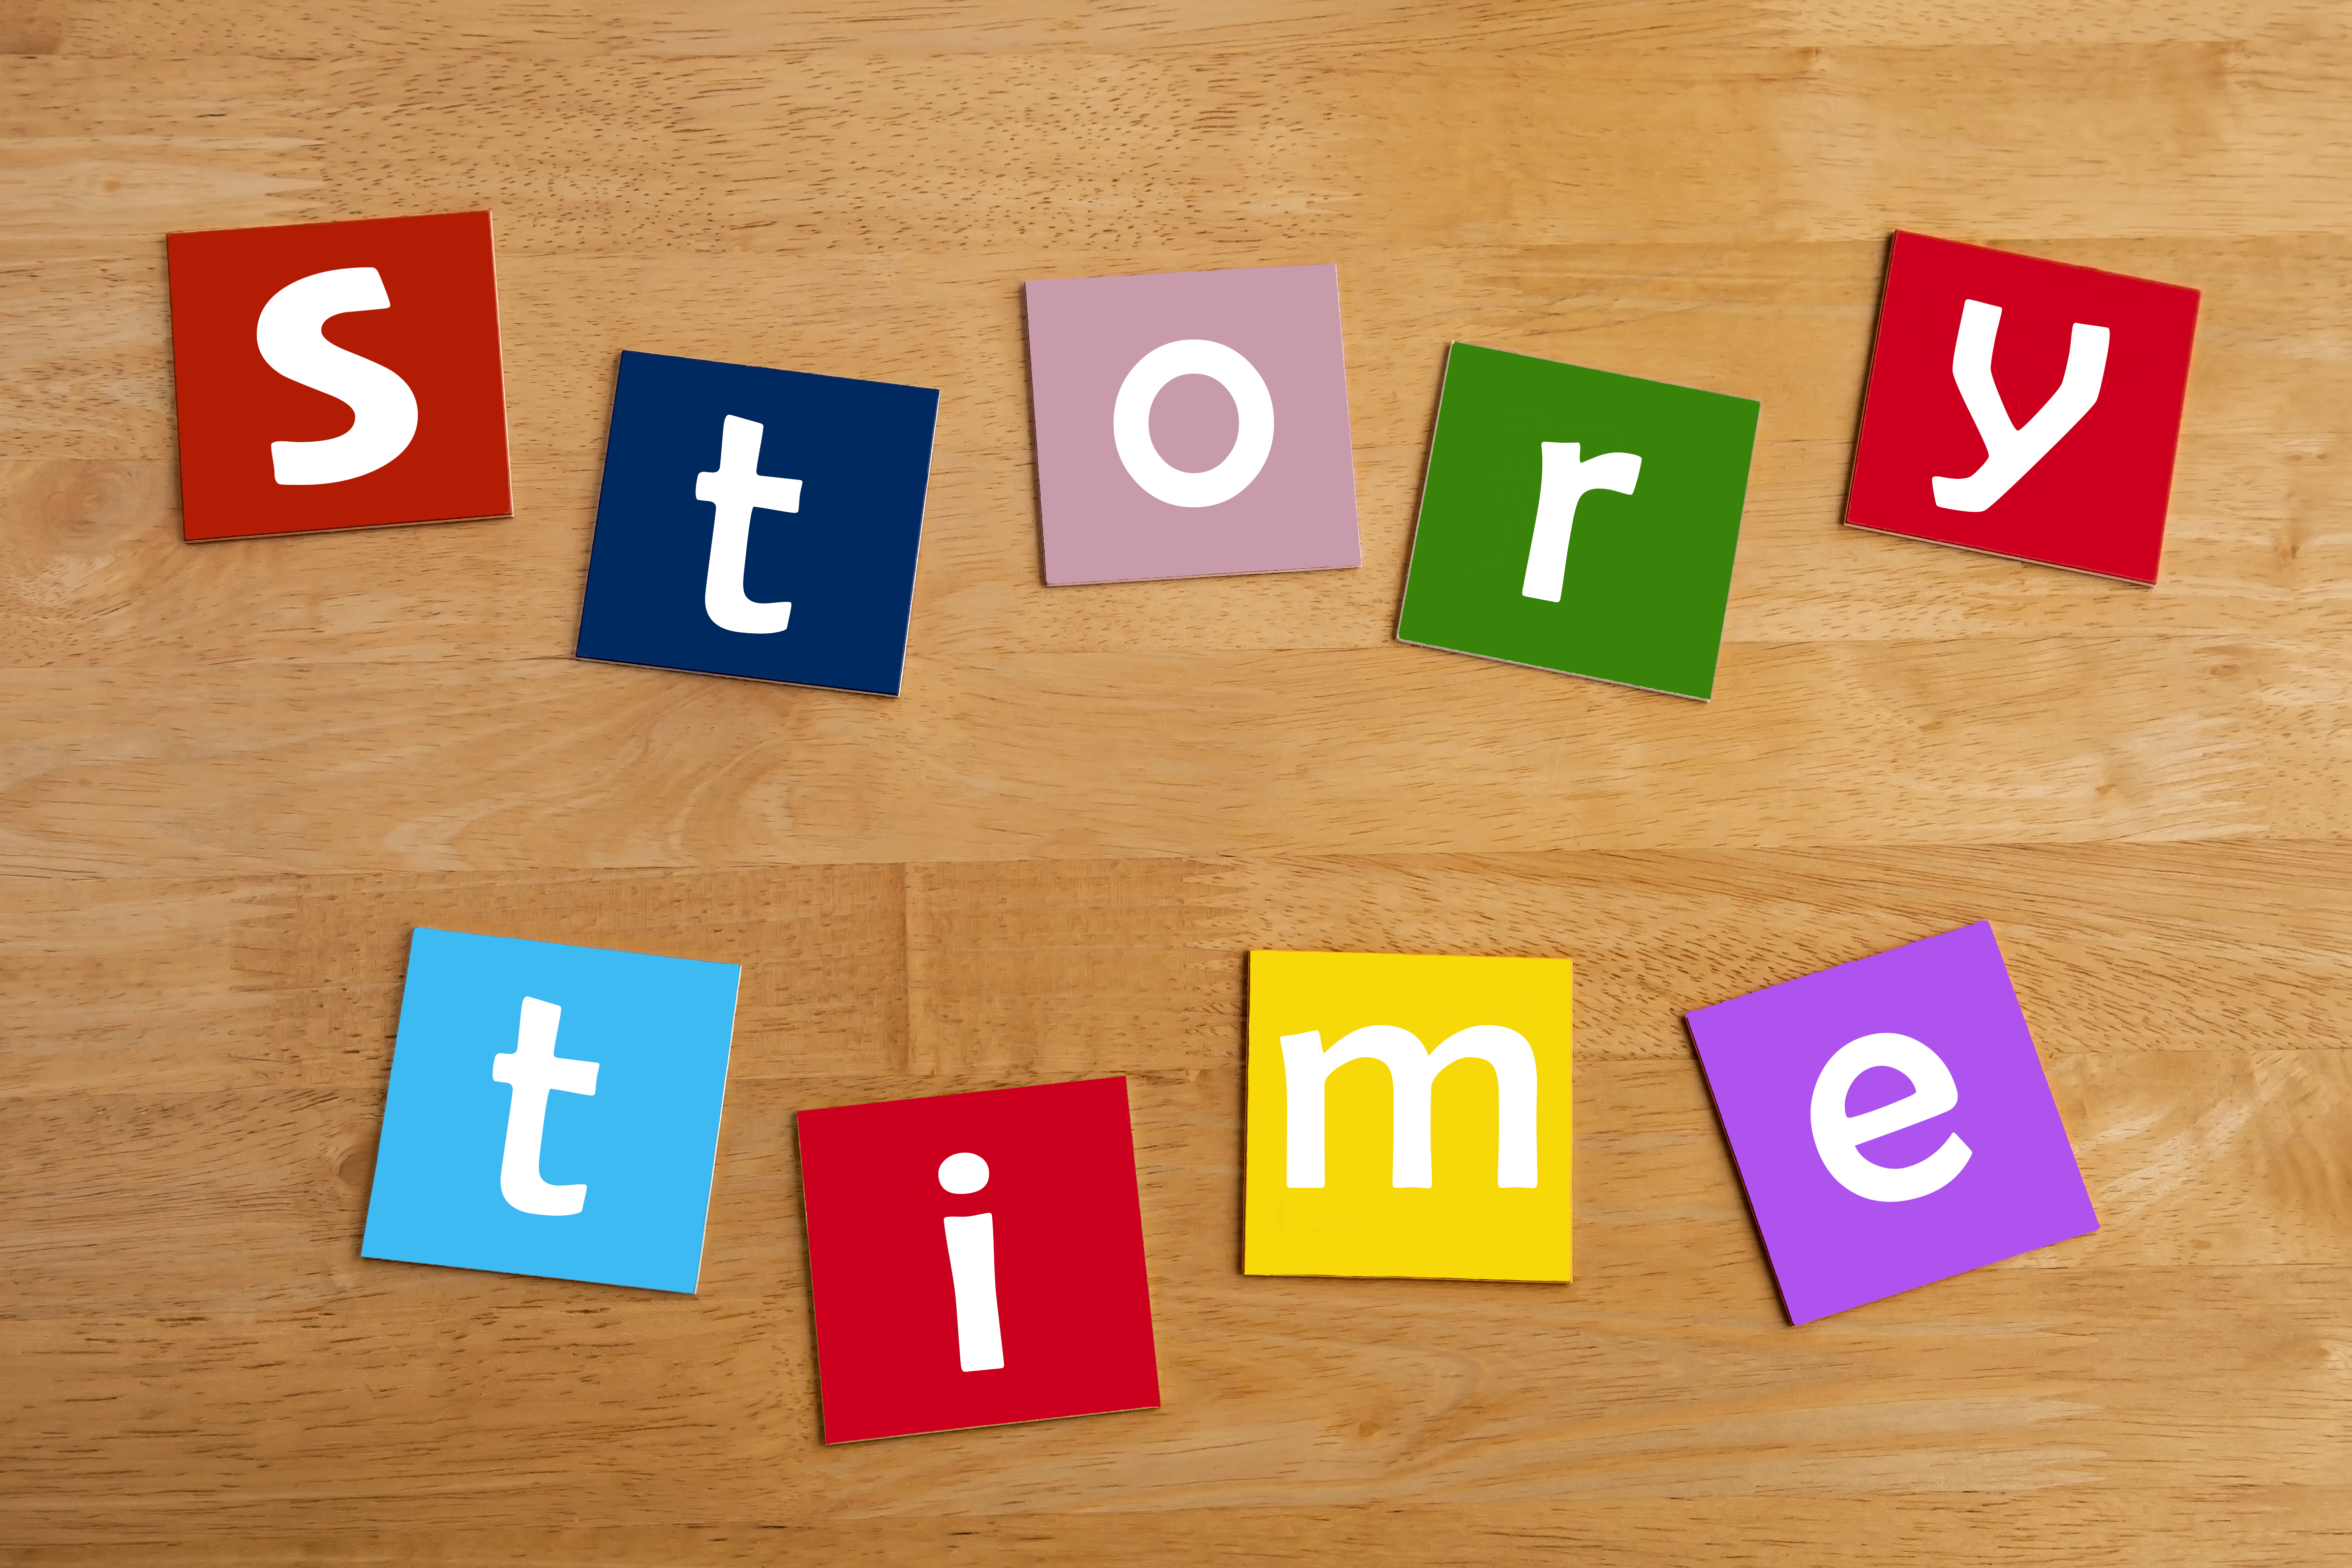 story time - word and alphabet letters sign for stories, story books, reading, school children, libr